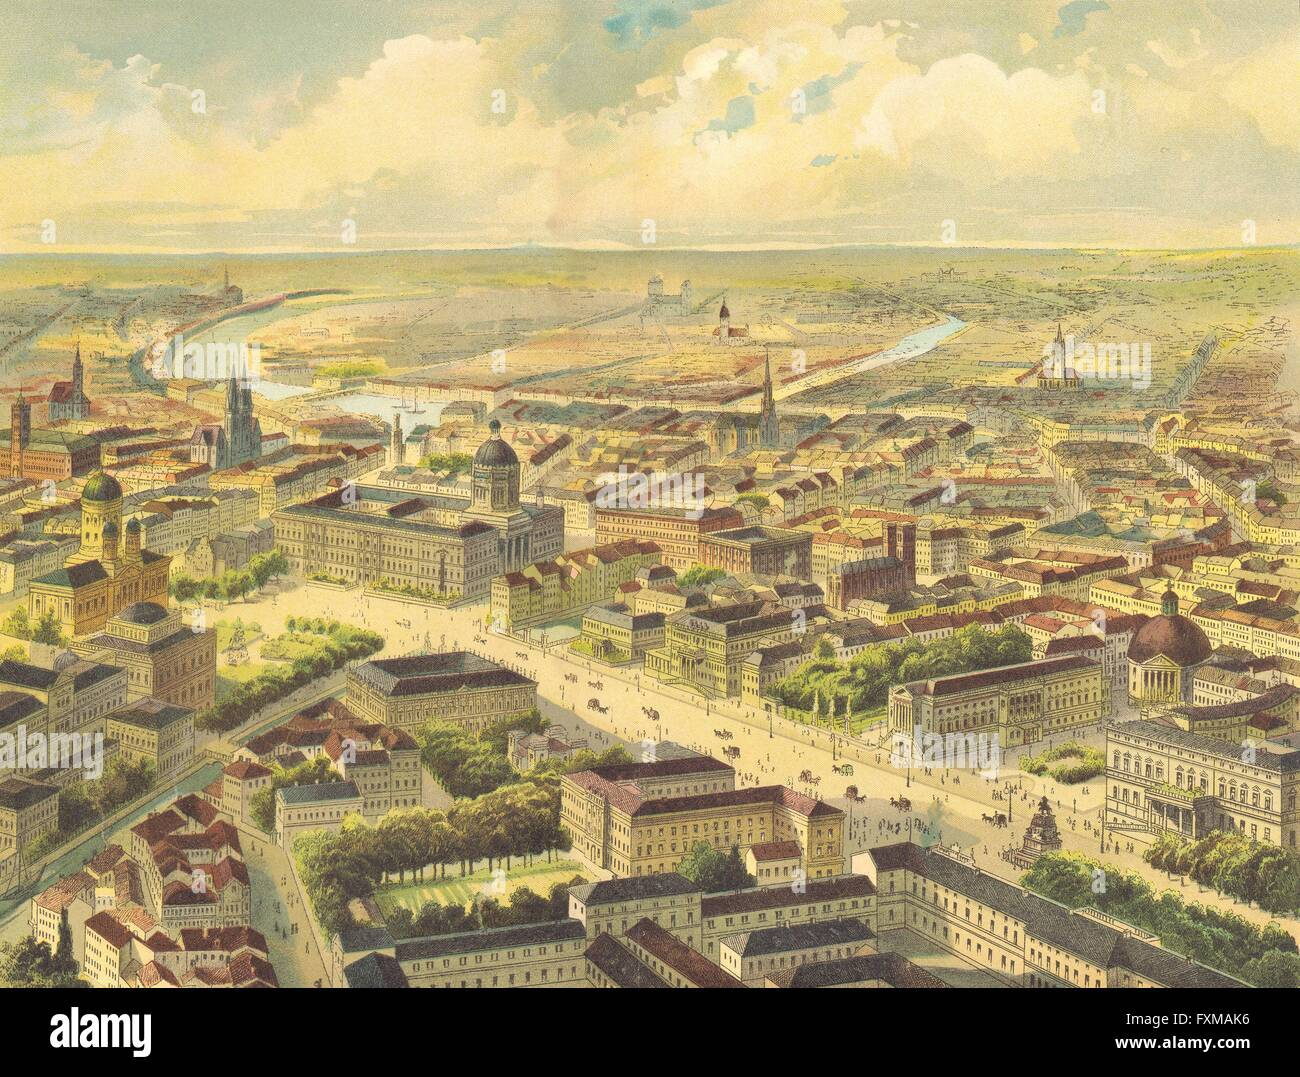 BERLIN: Walther Excellent large Chromolithograph, antique print 1880 - Stock Image